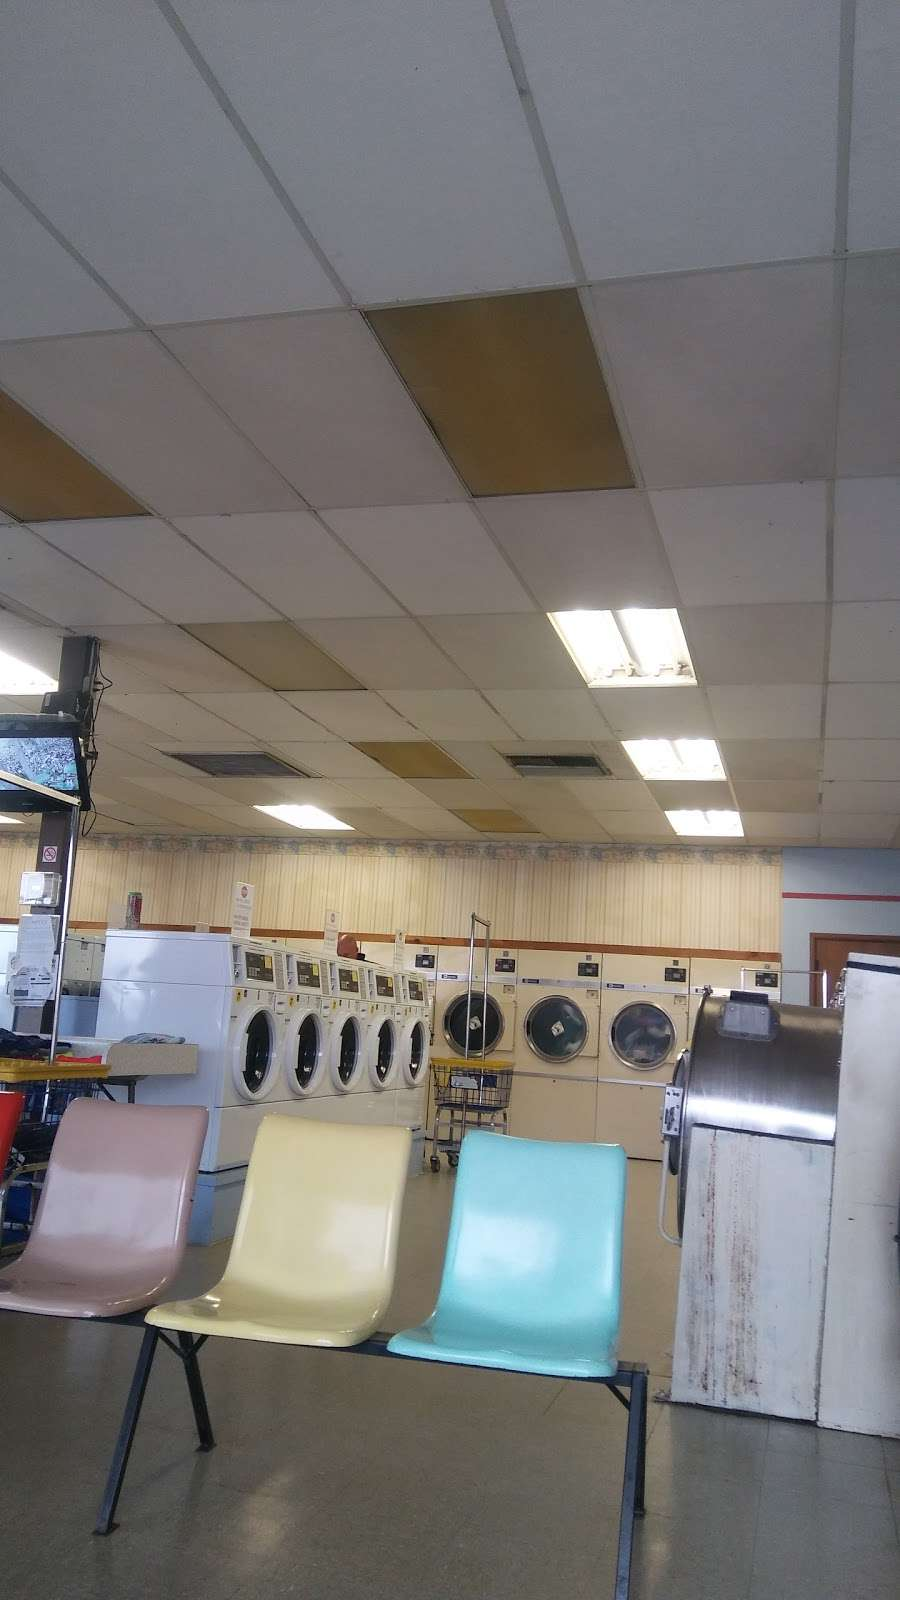 Coin Laundry - laundry  | Photo 8 of 10 | Address: 403 Main St, Schertz, TX 78154, USA